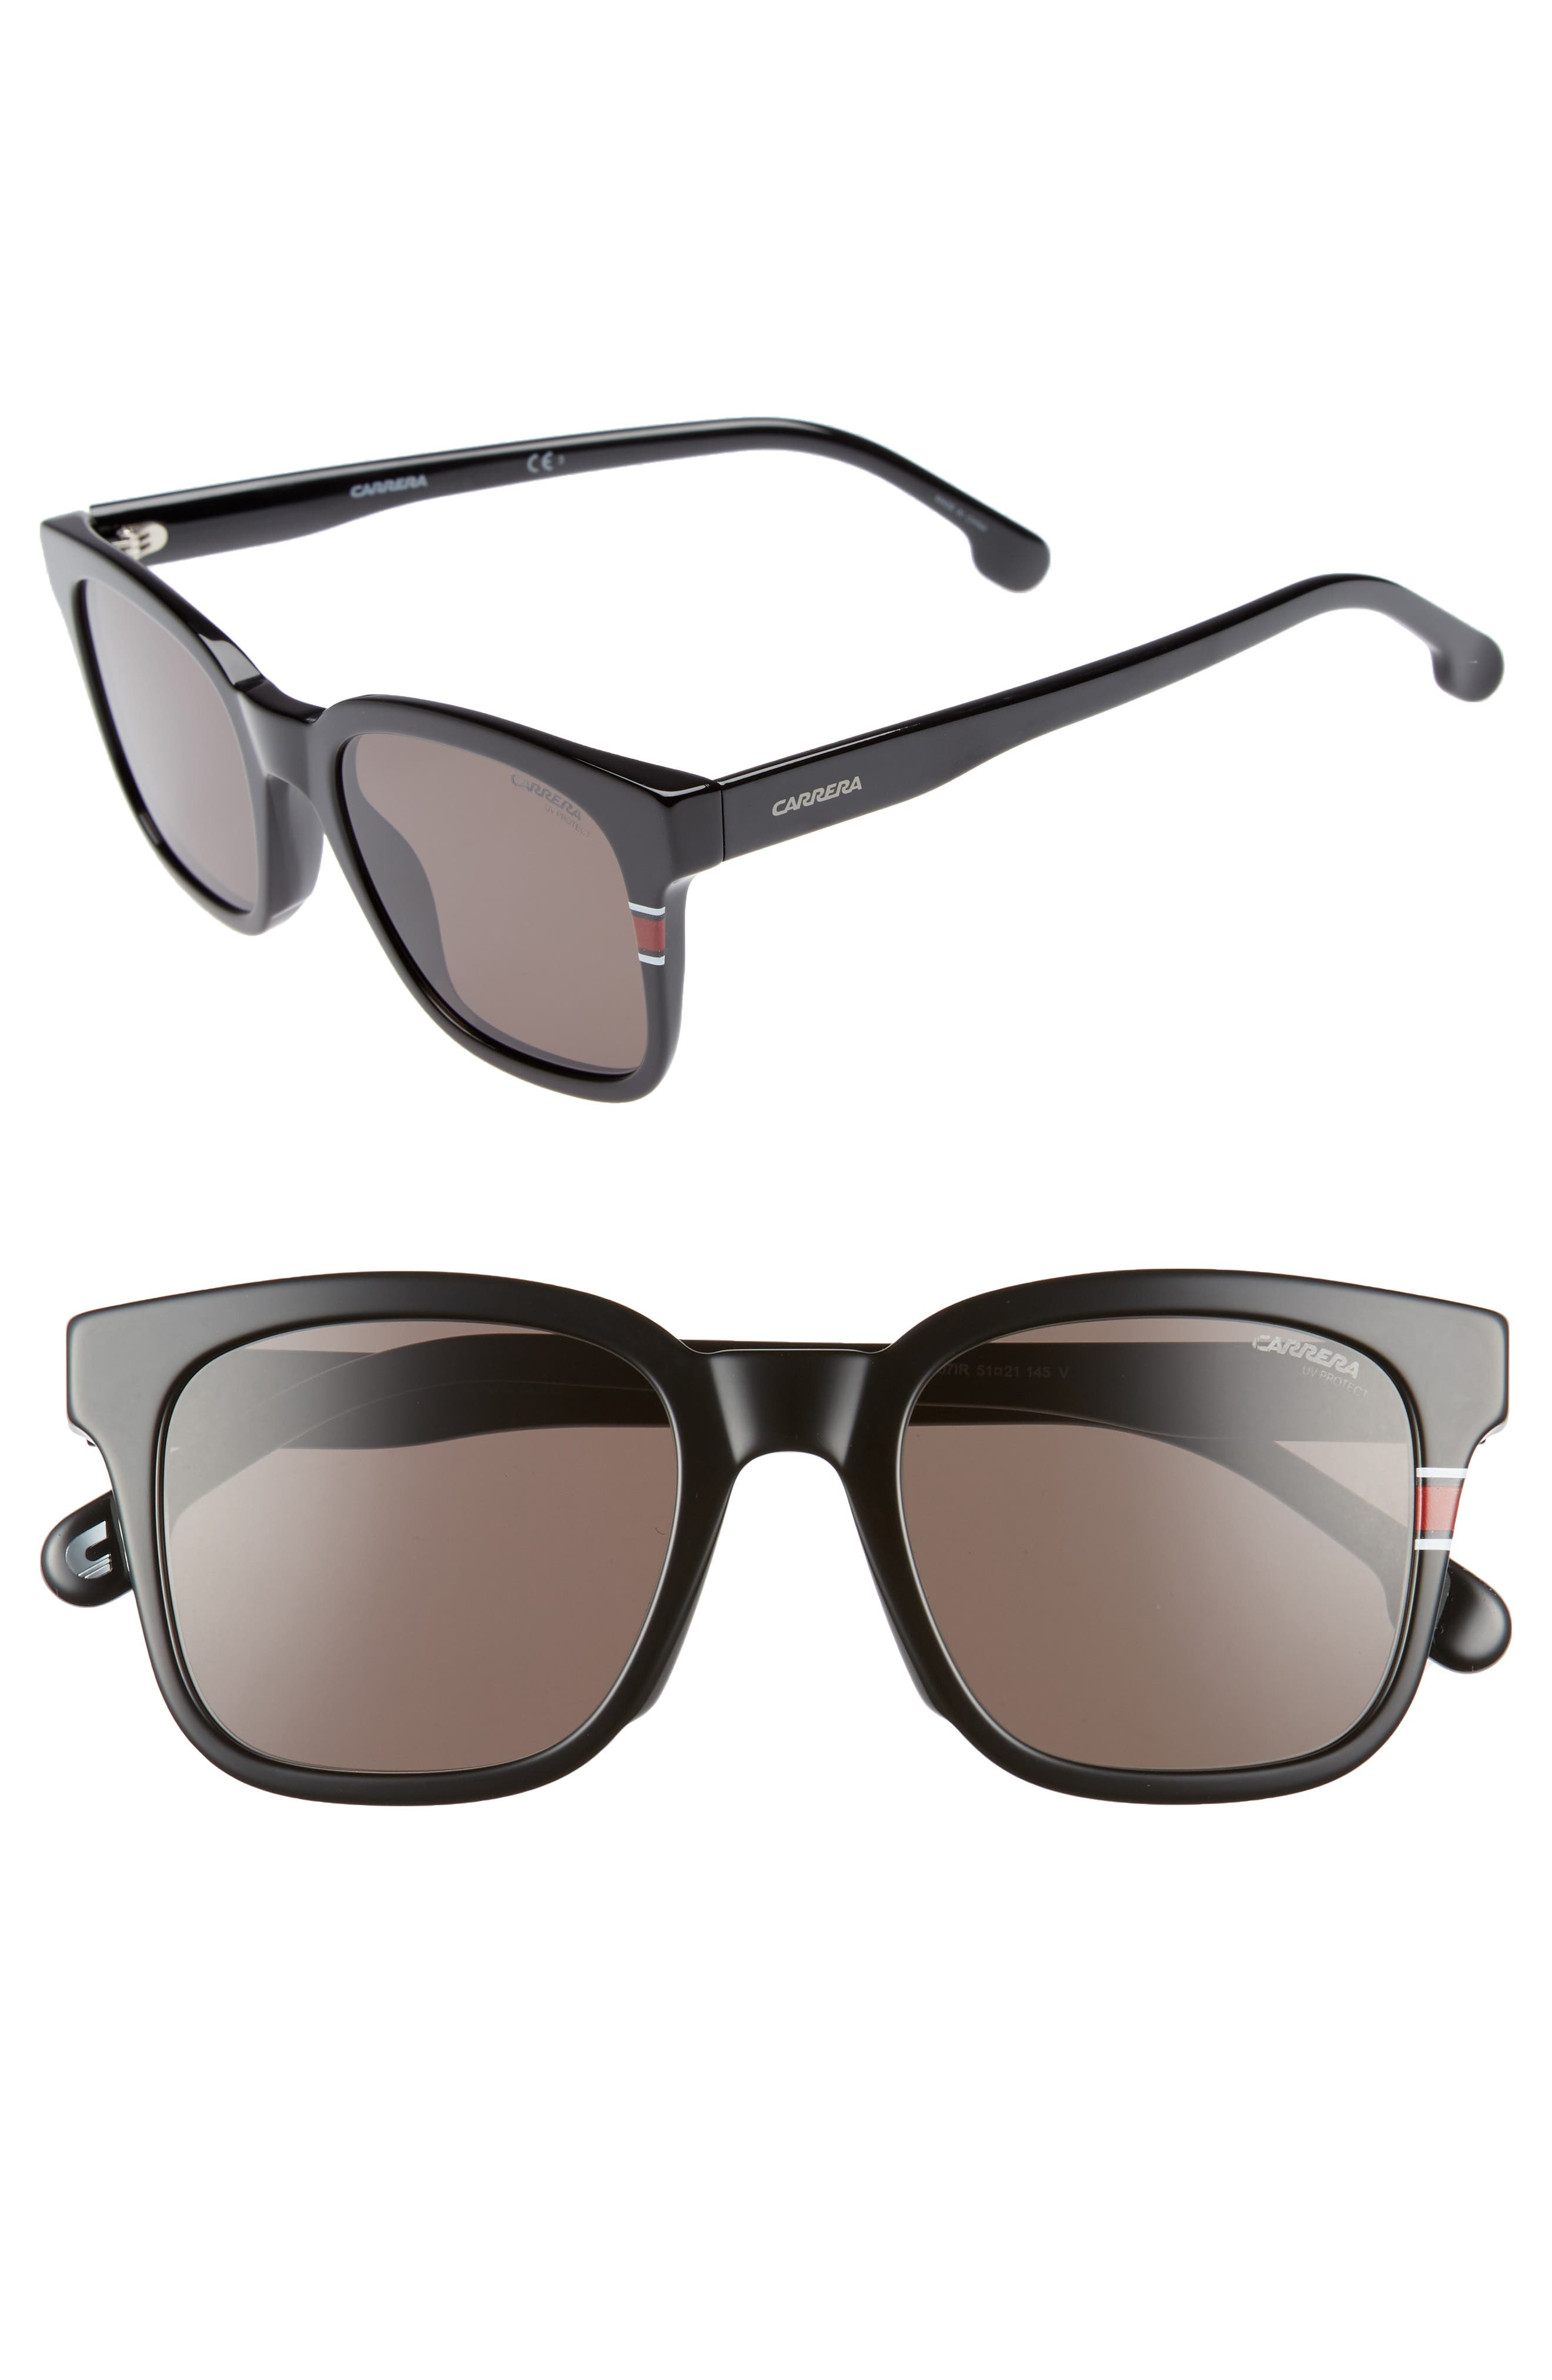 Carrera Eyewear 51mm Polarized Sunglasses